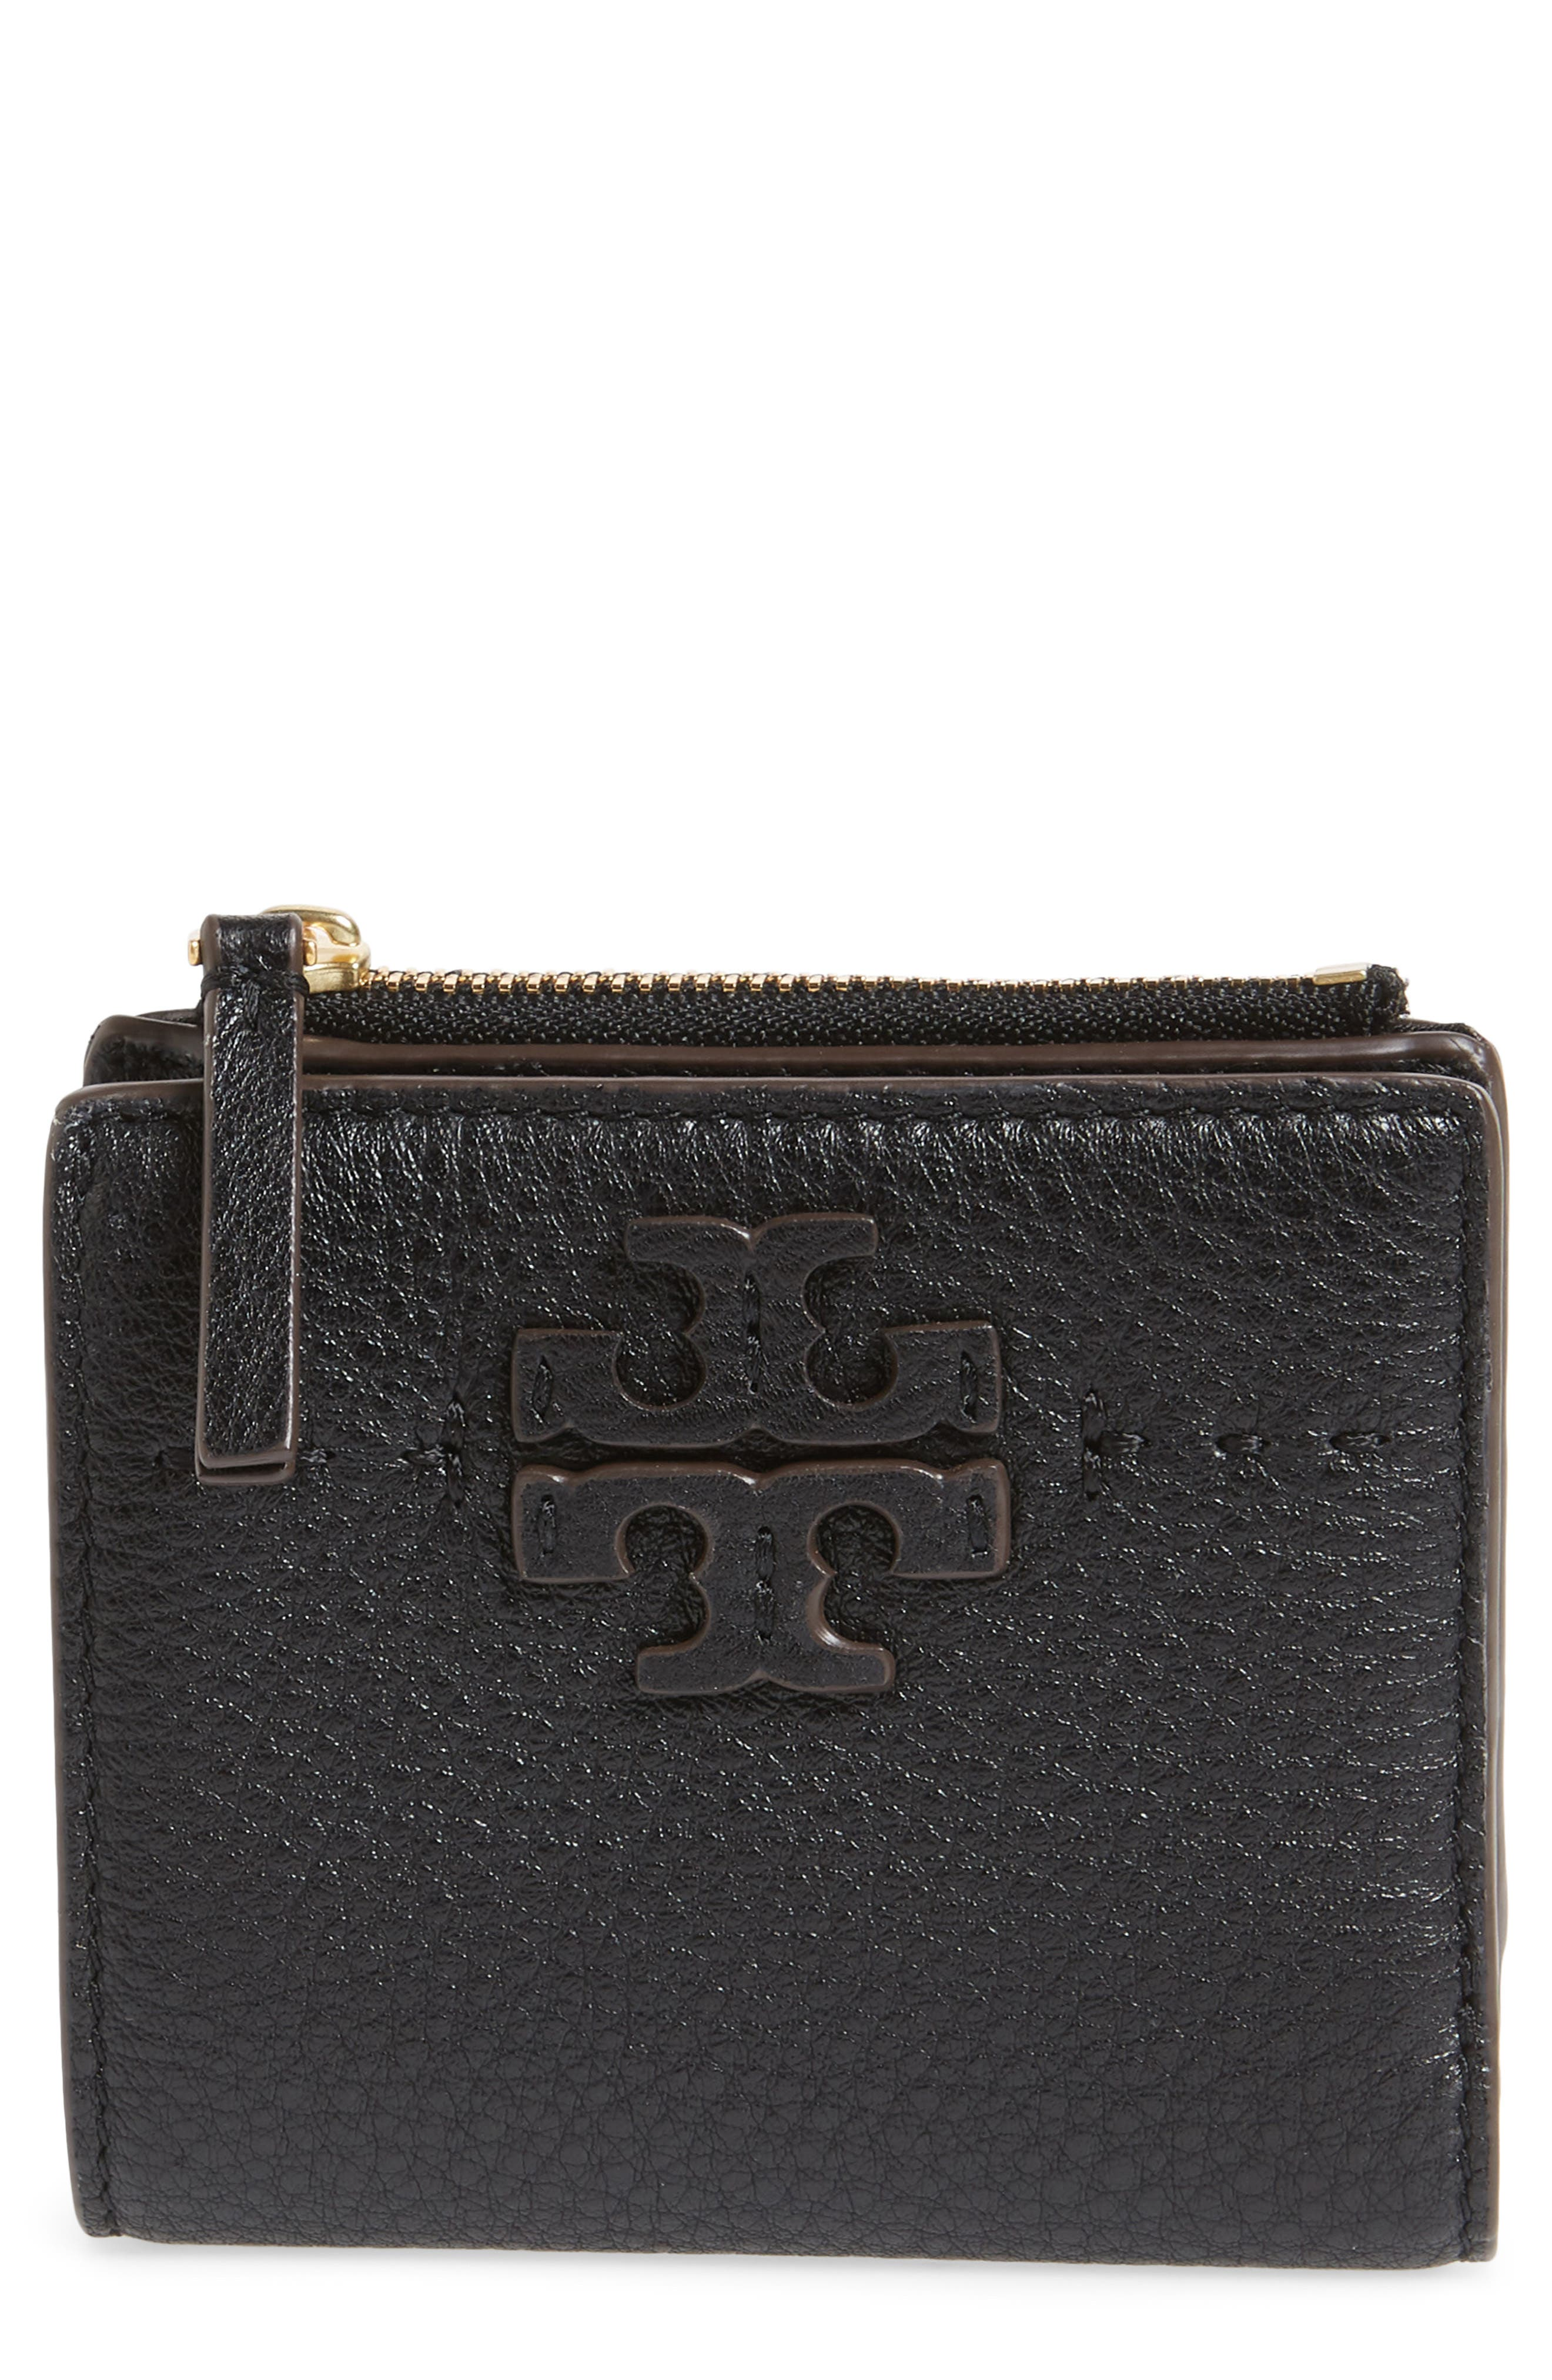 McGraw Leather Bifold Wallet,                             Main thumbnail 1, color,                             001